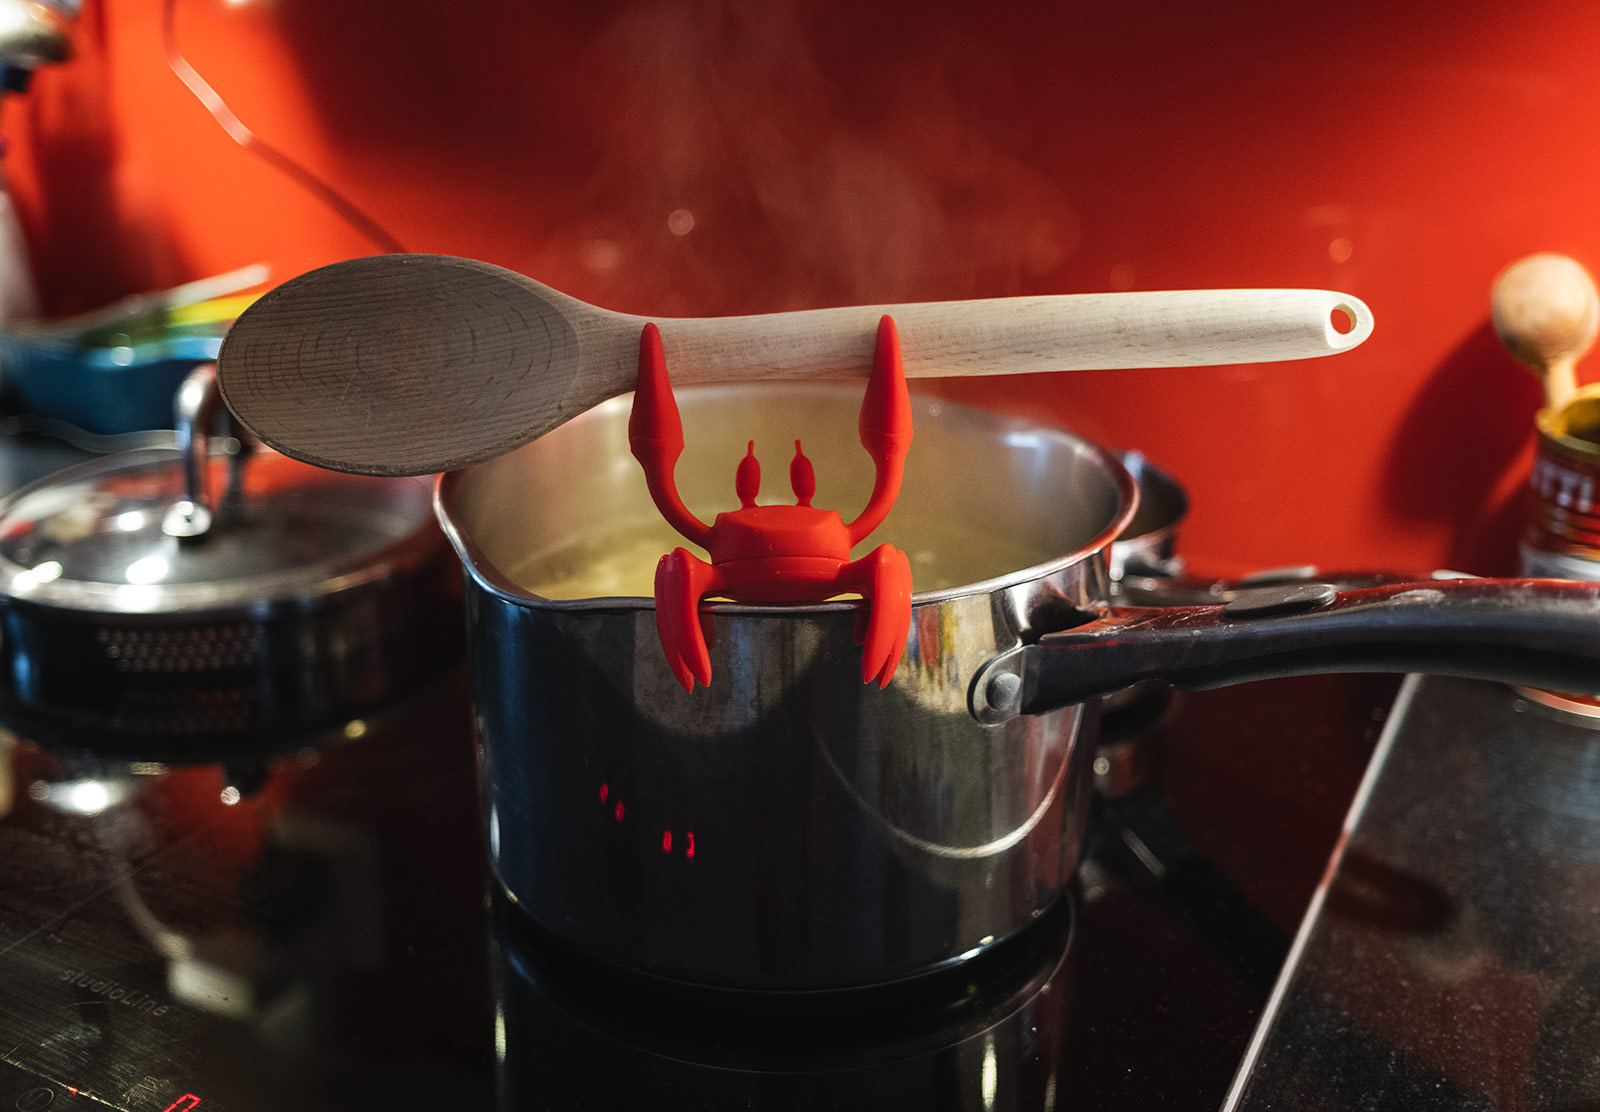 Crab spoon holder